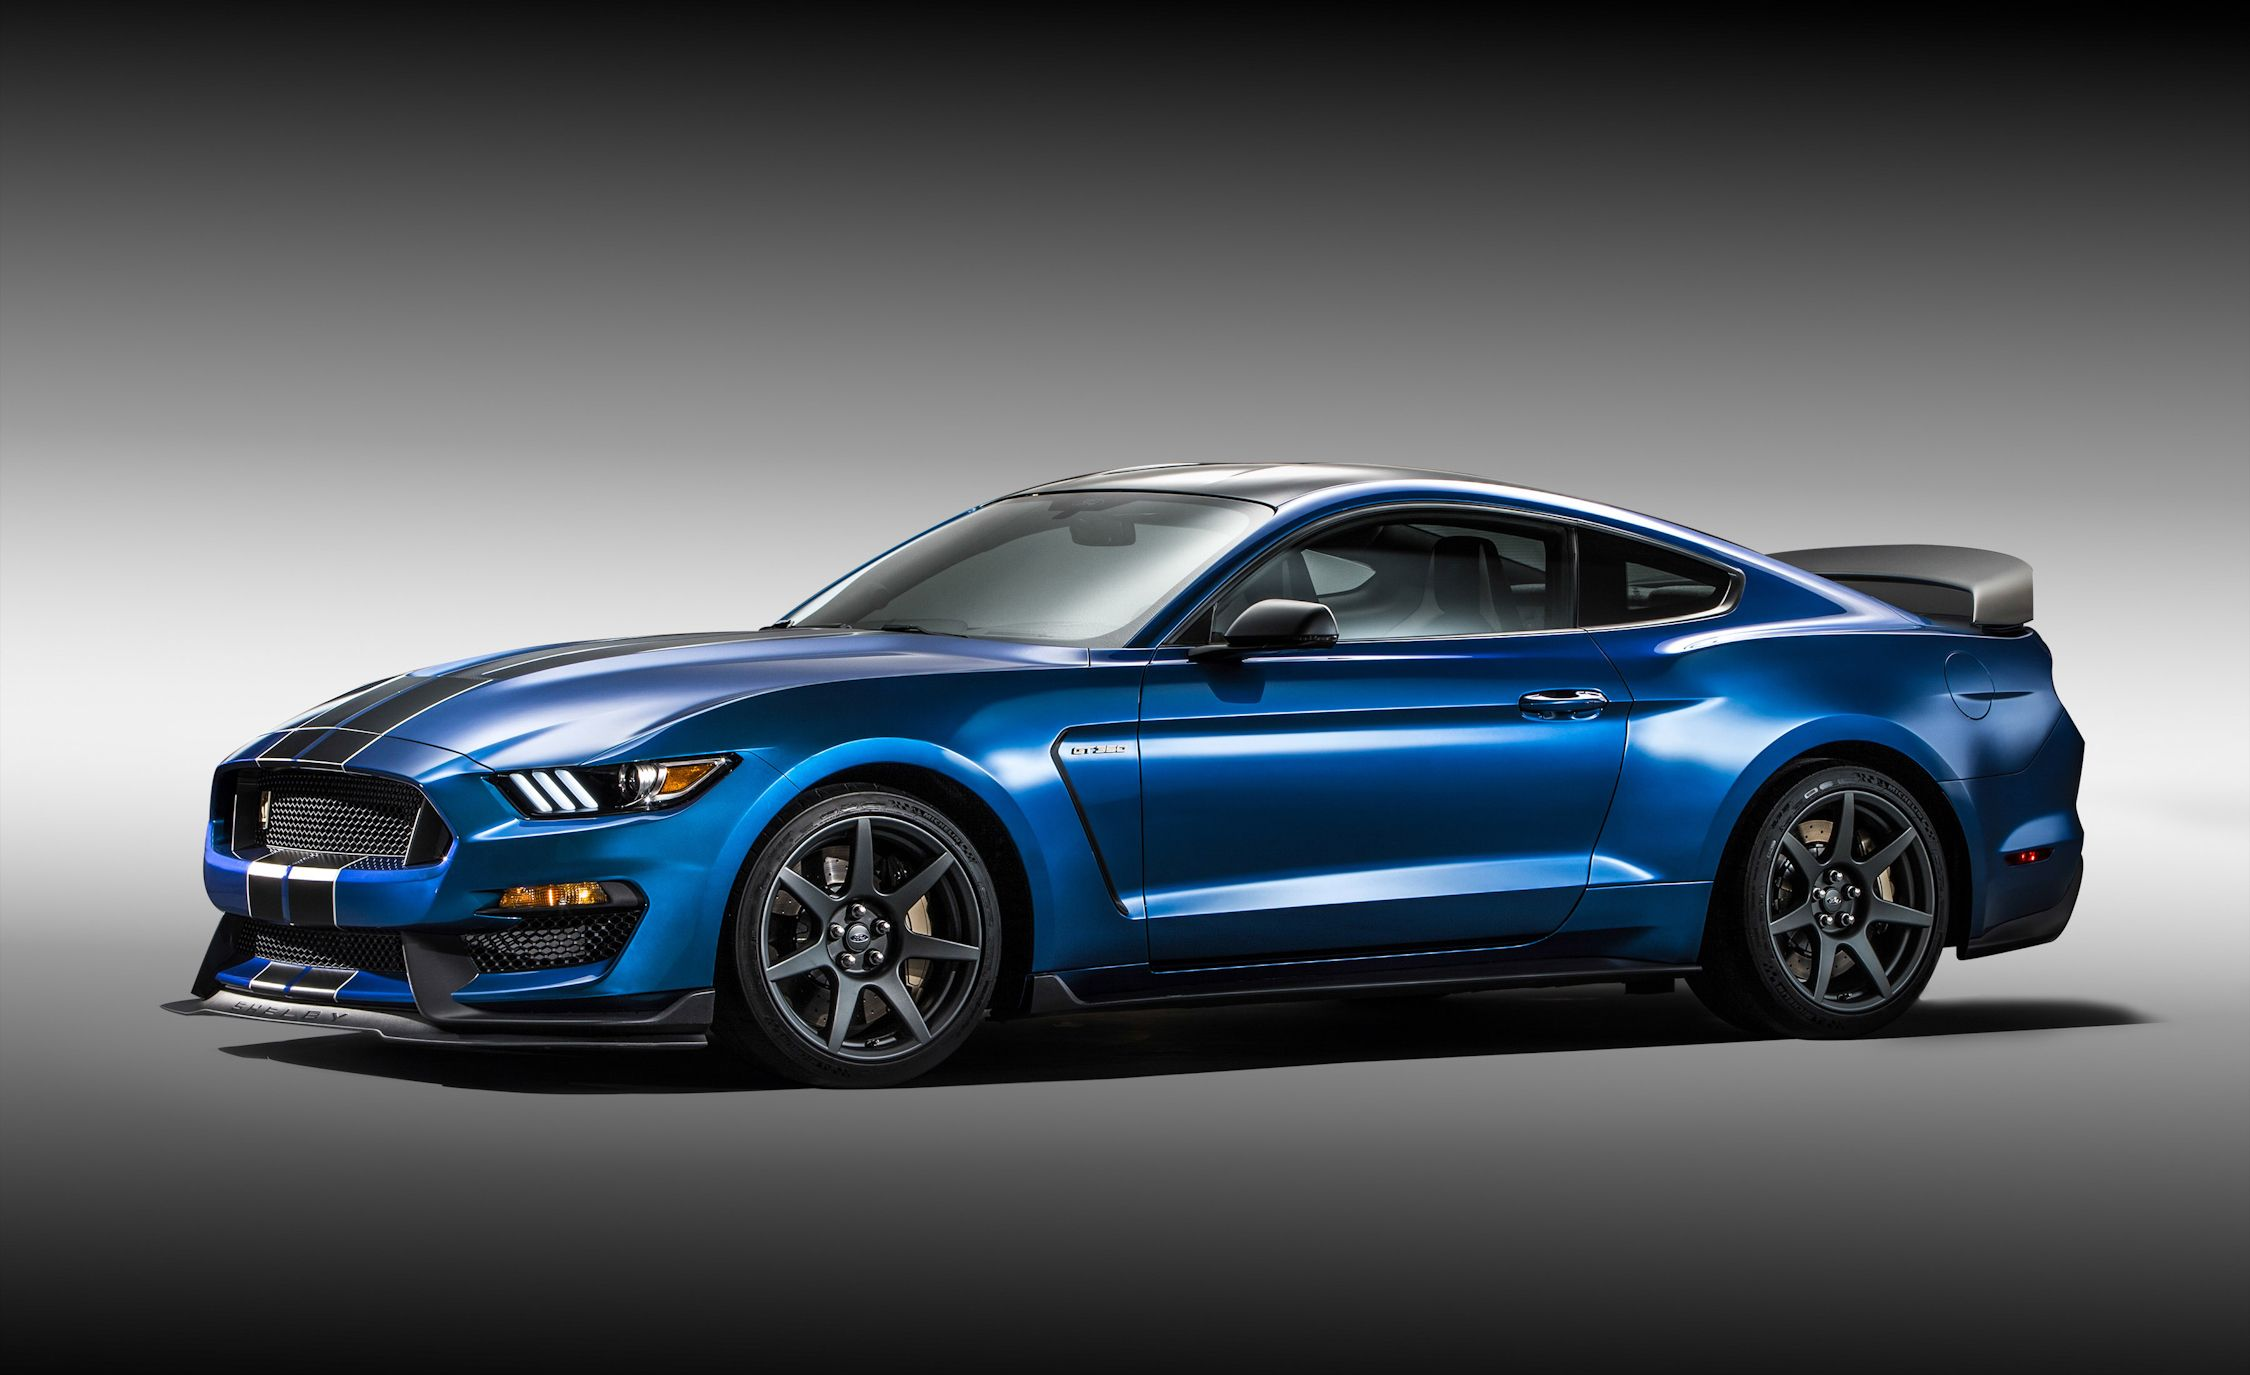 2016 ford mustang shelby gt350r - 2016 Ford Mustang Shelby Gt350 Pictures Photo Gallery Car And Driver